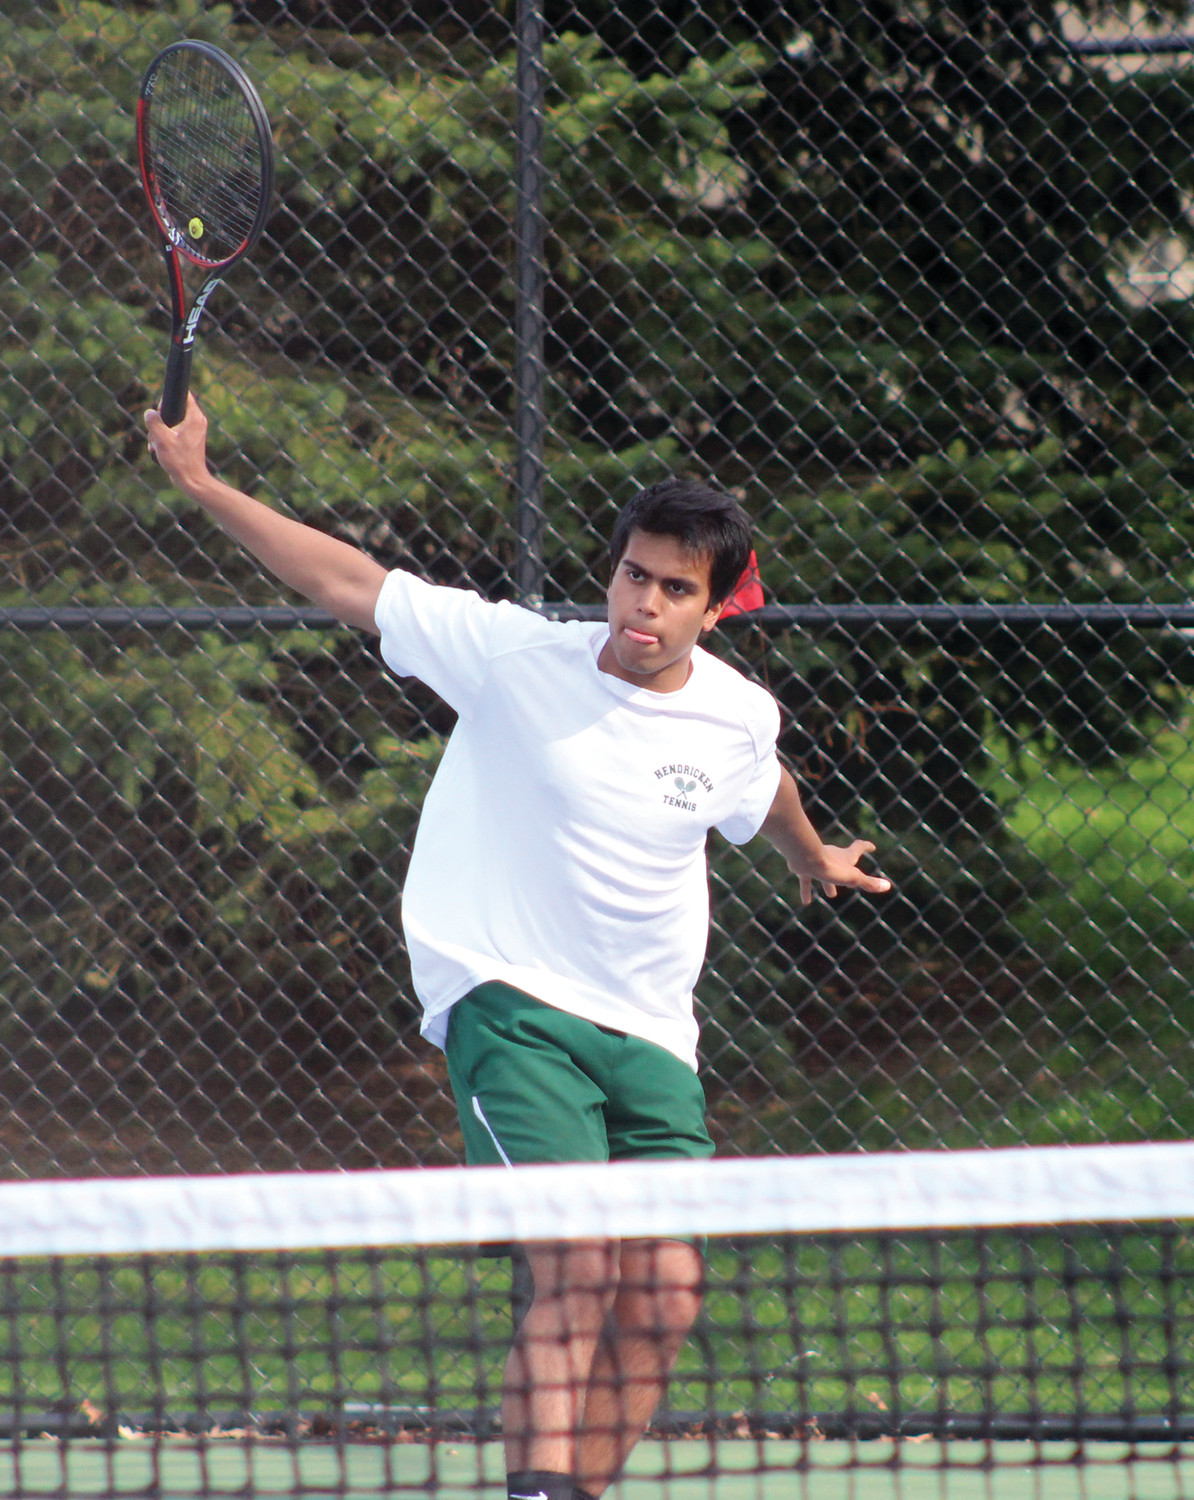 RETURN FIRE: Bishop Hendricken's Aditya Kimi fires a shot against North Kingstown.